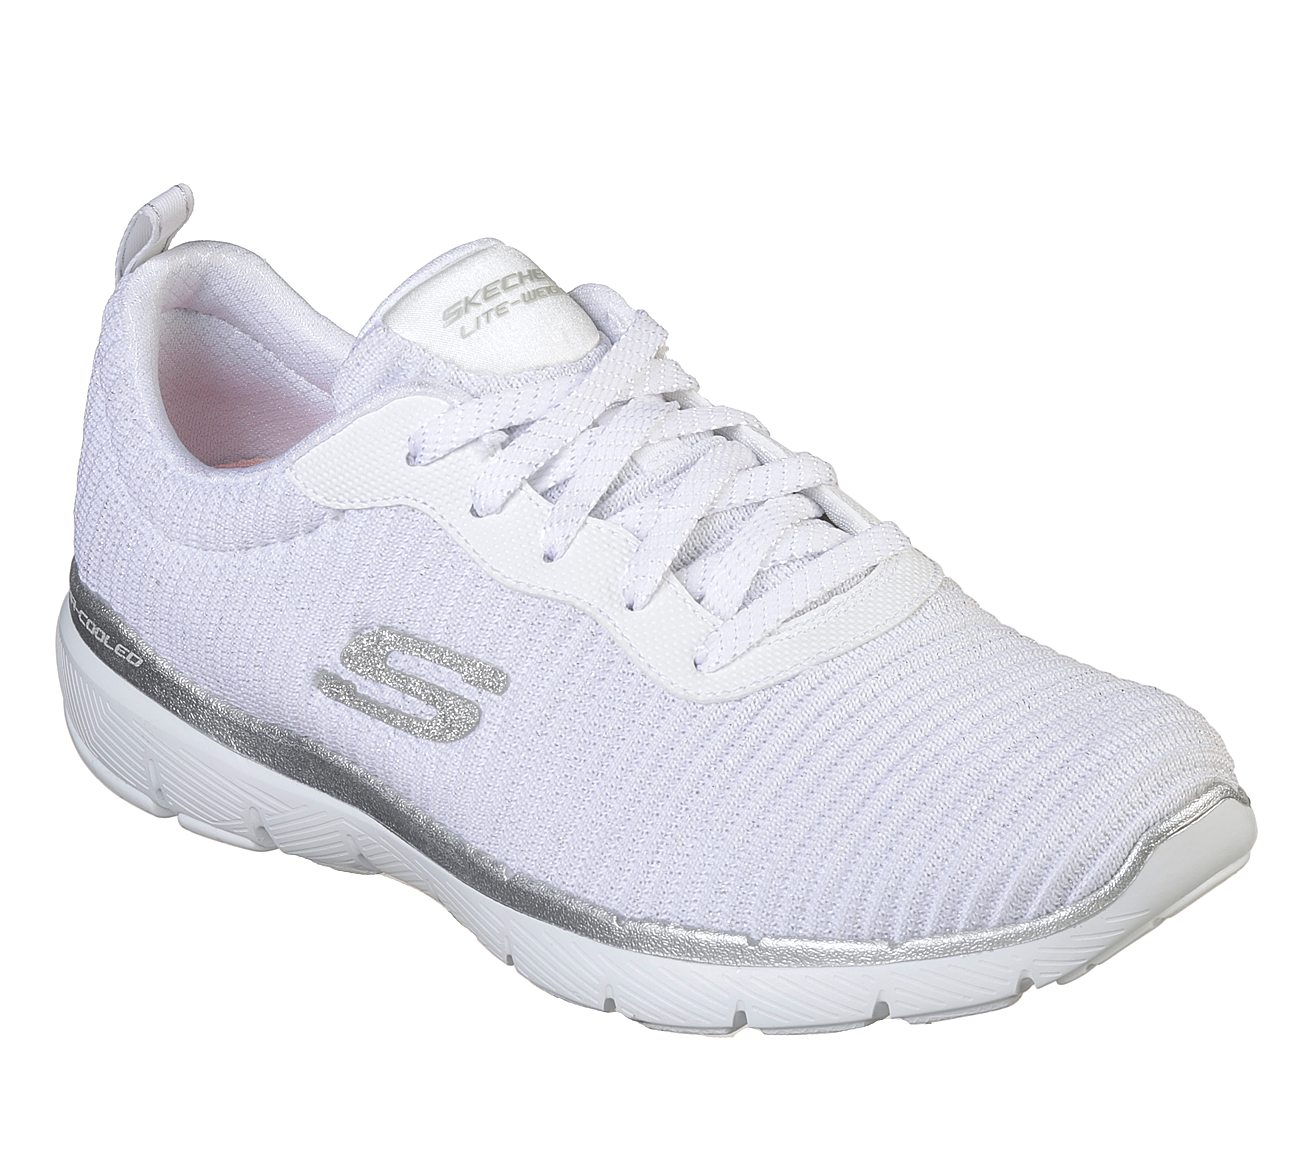 Buy SKECHERS Flex Appeal 3.0 - Endless